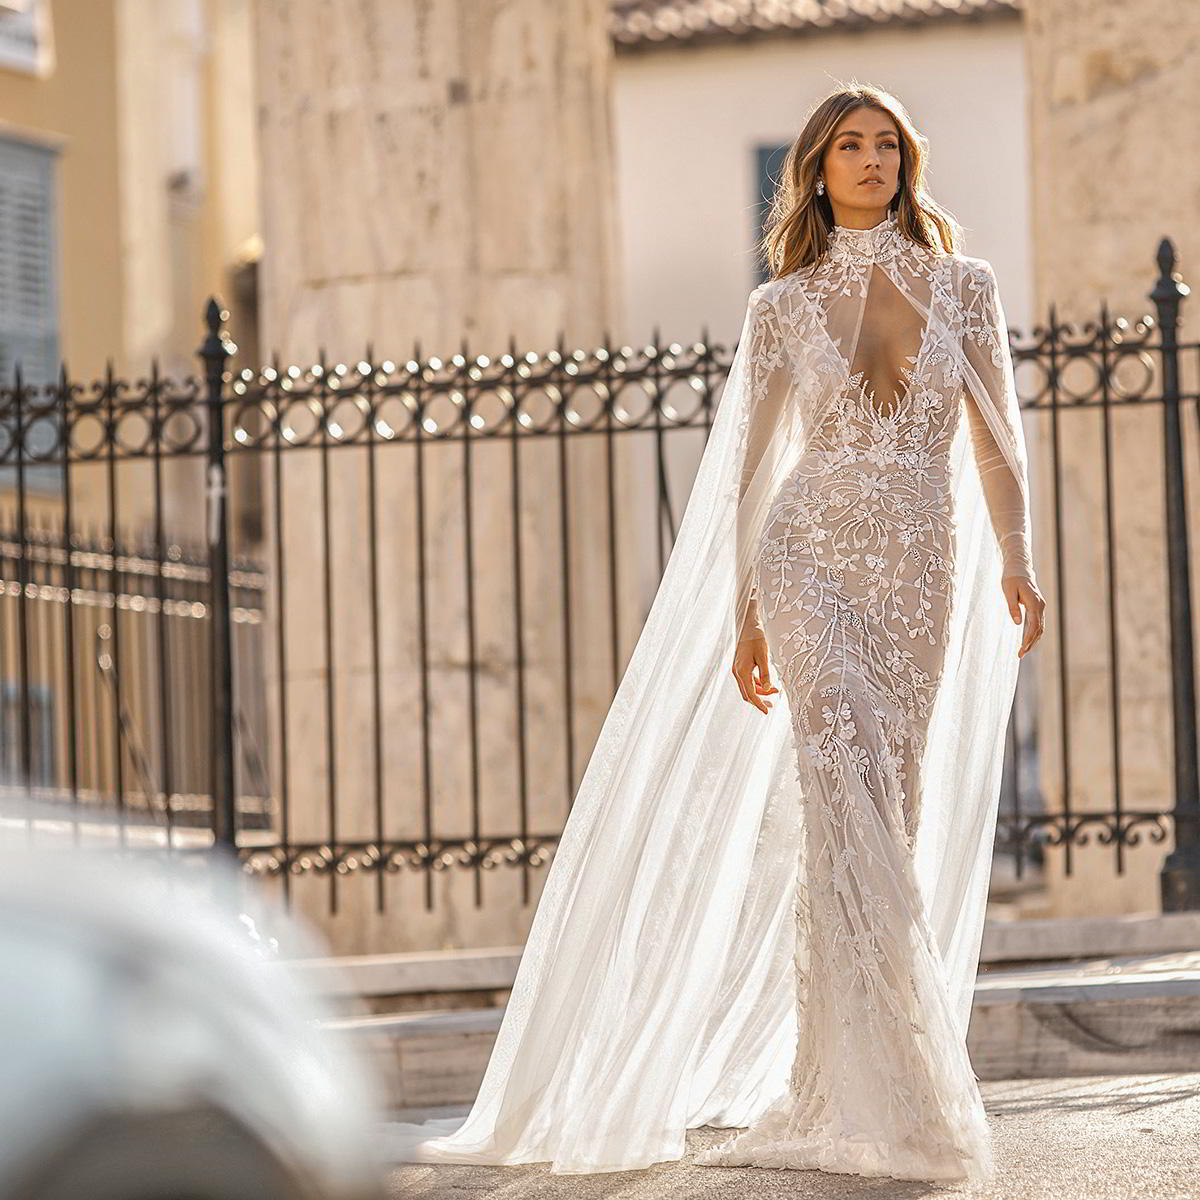 Berta Wedding Dresses: Berta Fall 2019 Wedding Dresses